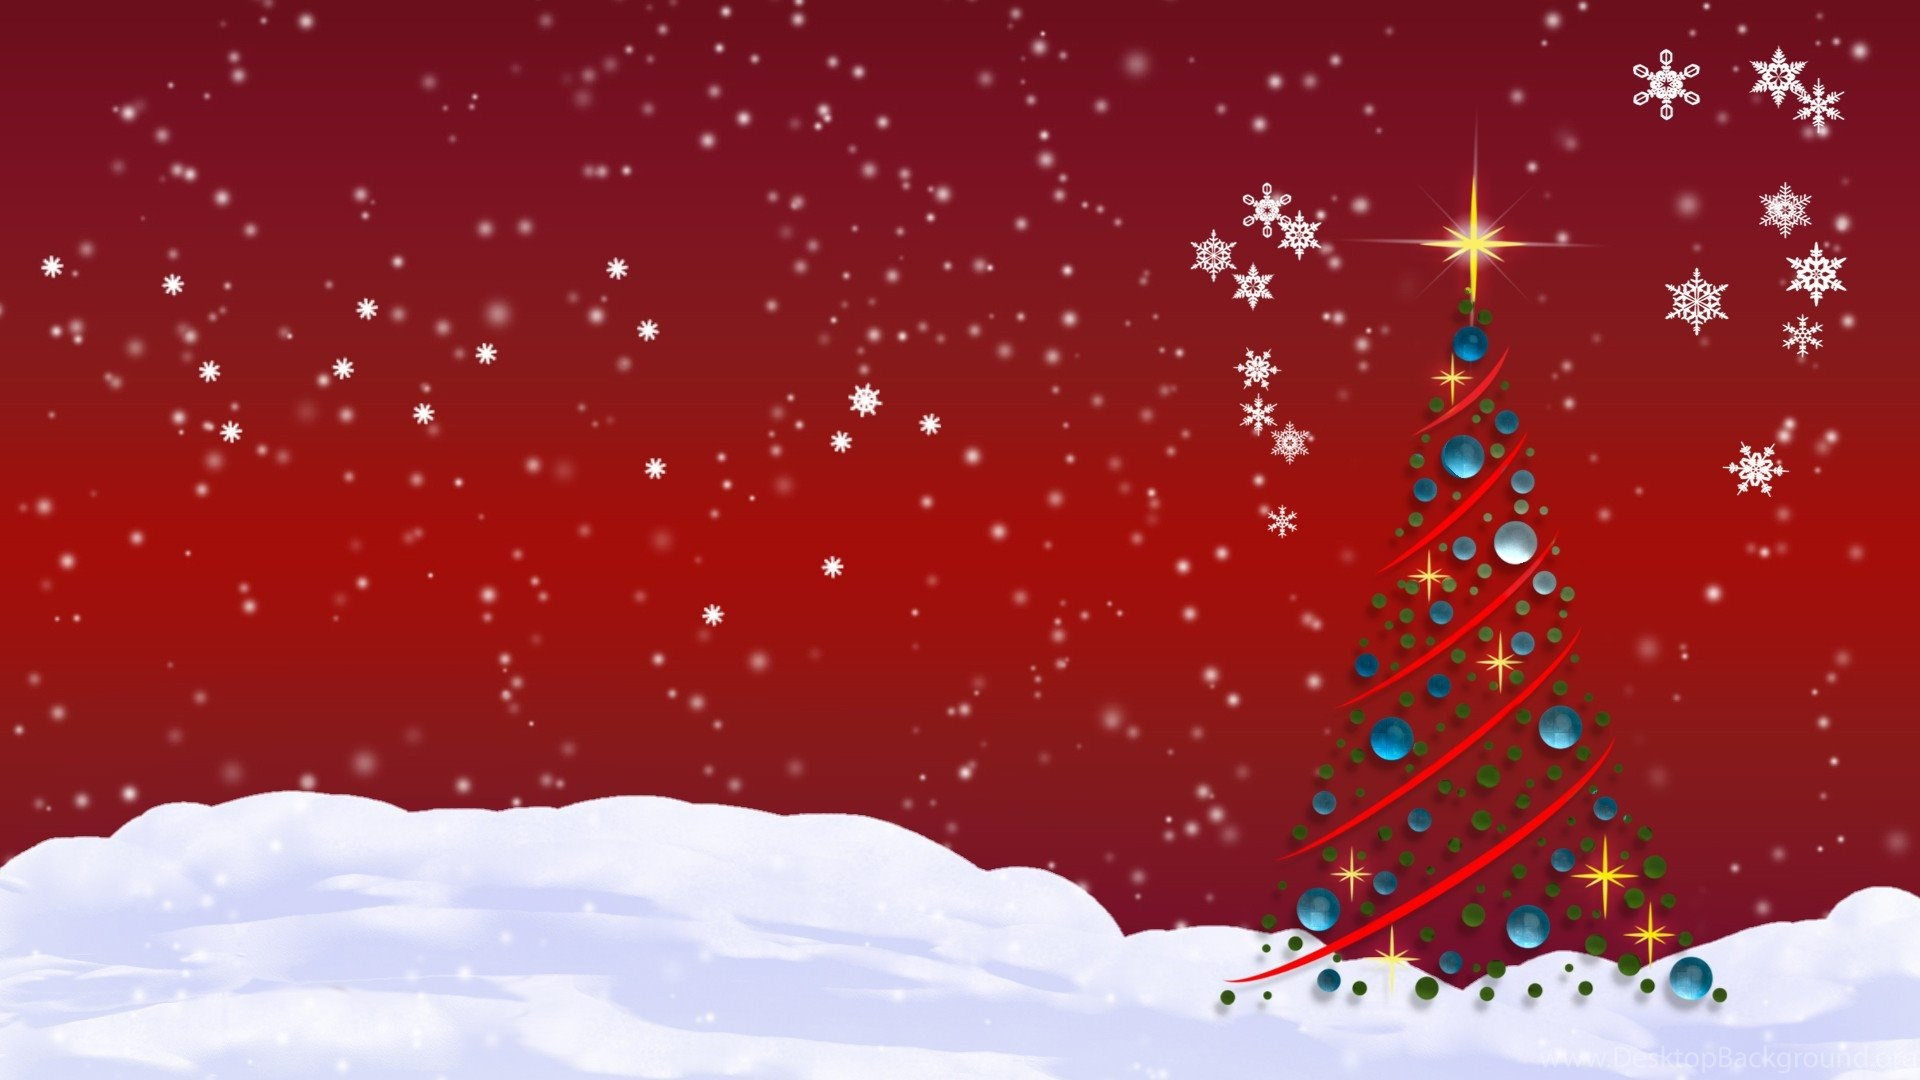 christmas screensavers for mac images, wallpapers, pictures